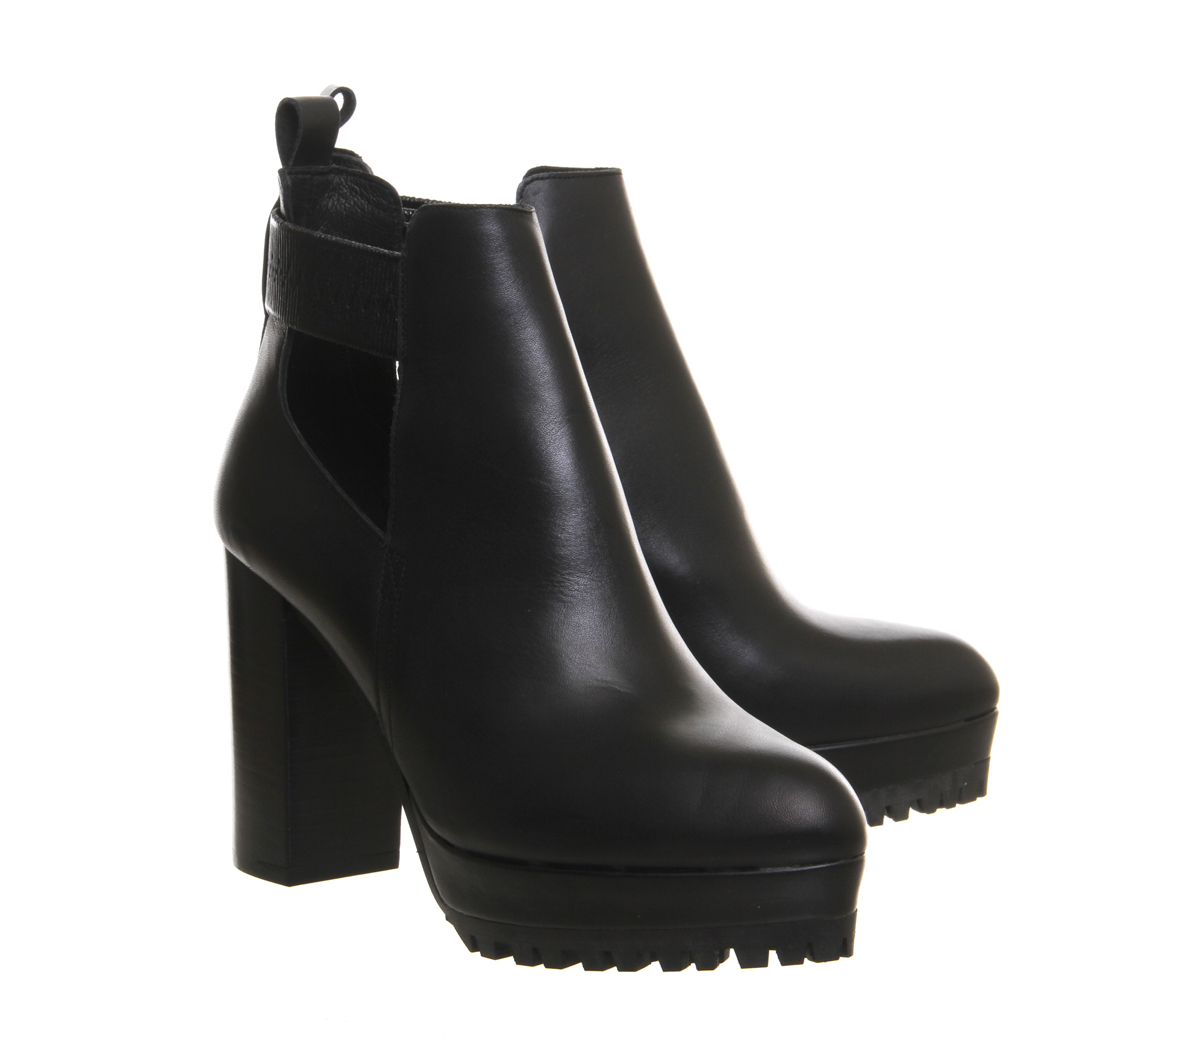 office frolic cut out cleated shoe boots in black save